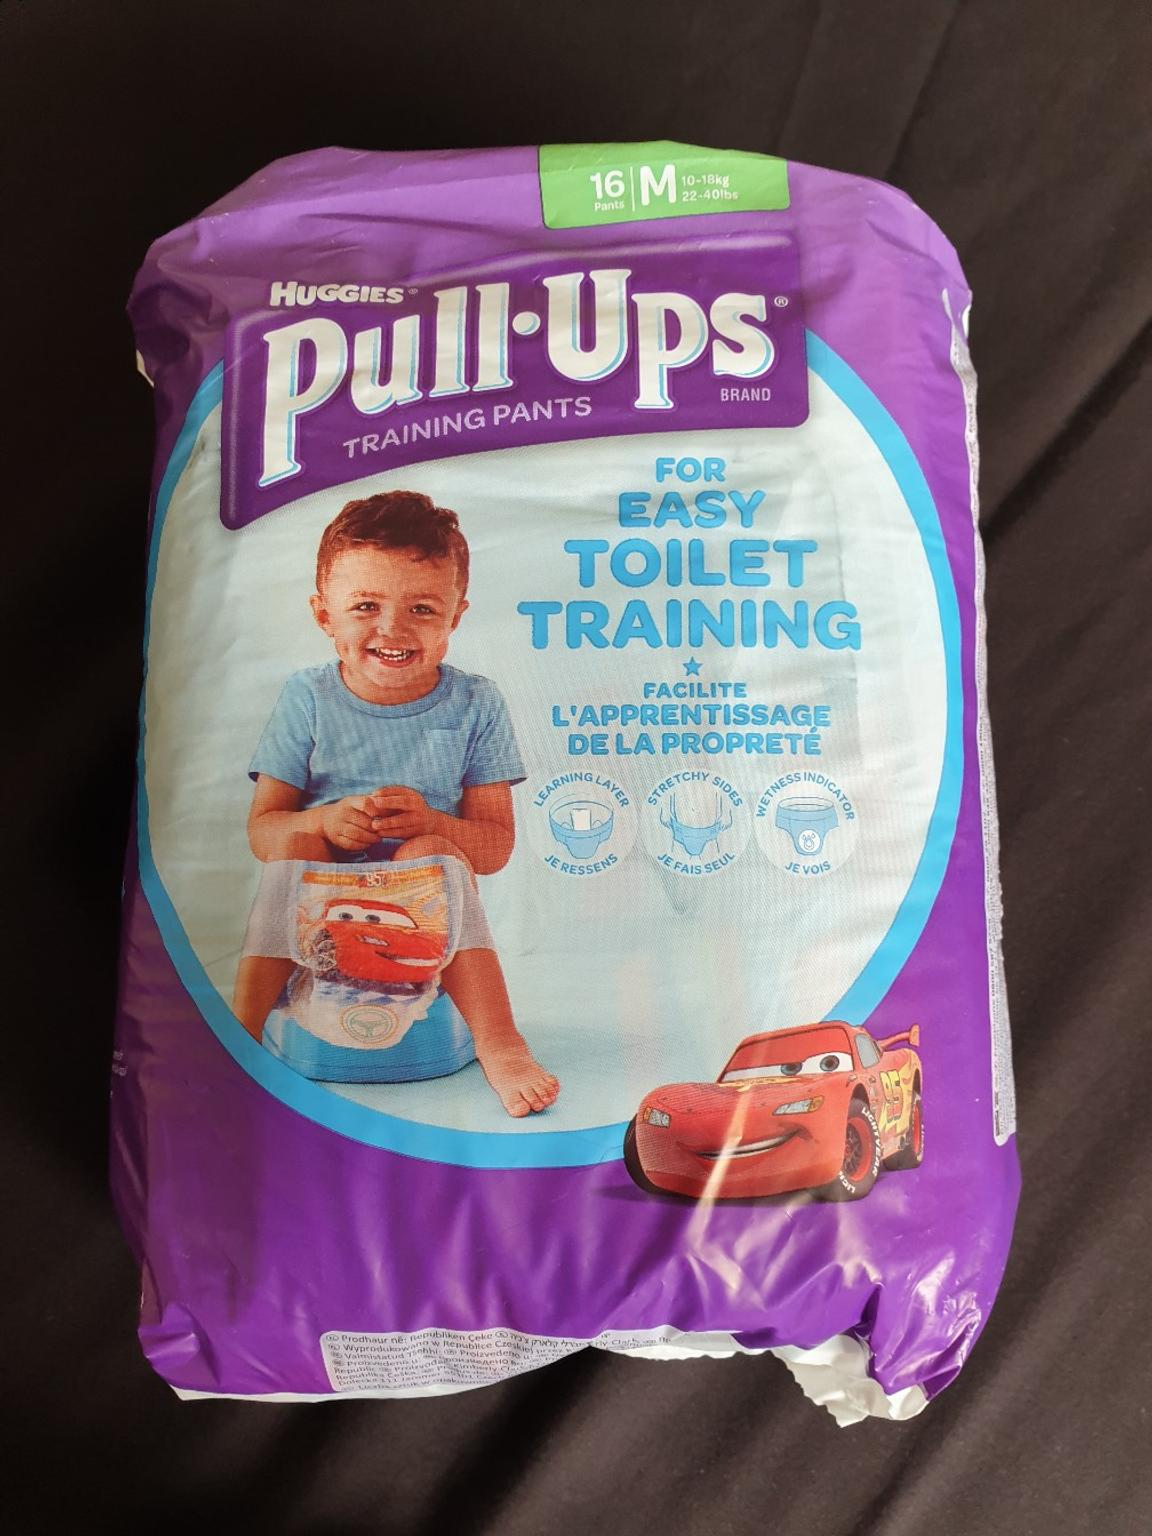 14 Huggies Pull-Ups Potty Training Pants for Boys Size 5 Medium 11-18kg